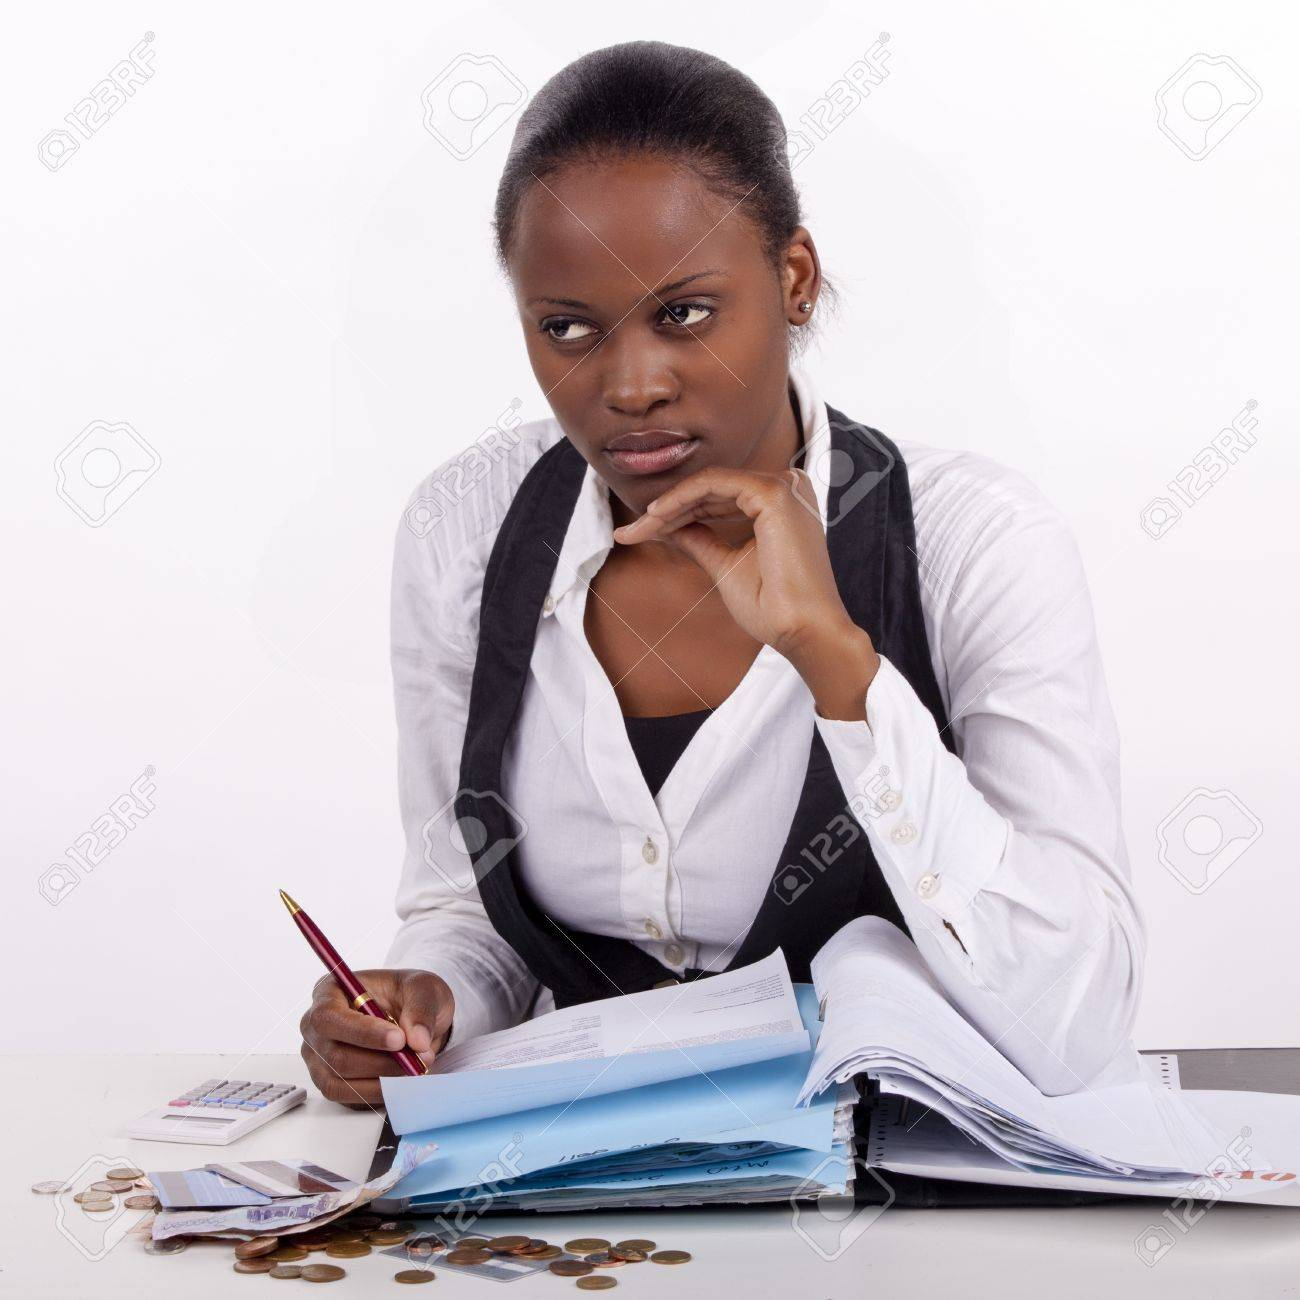 Young woman doing administrative work. Stock Photo - 13842287